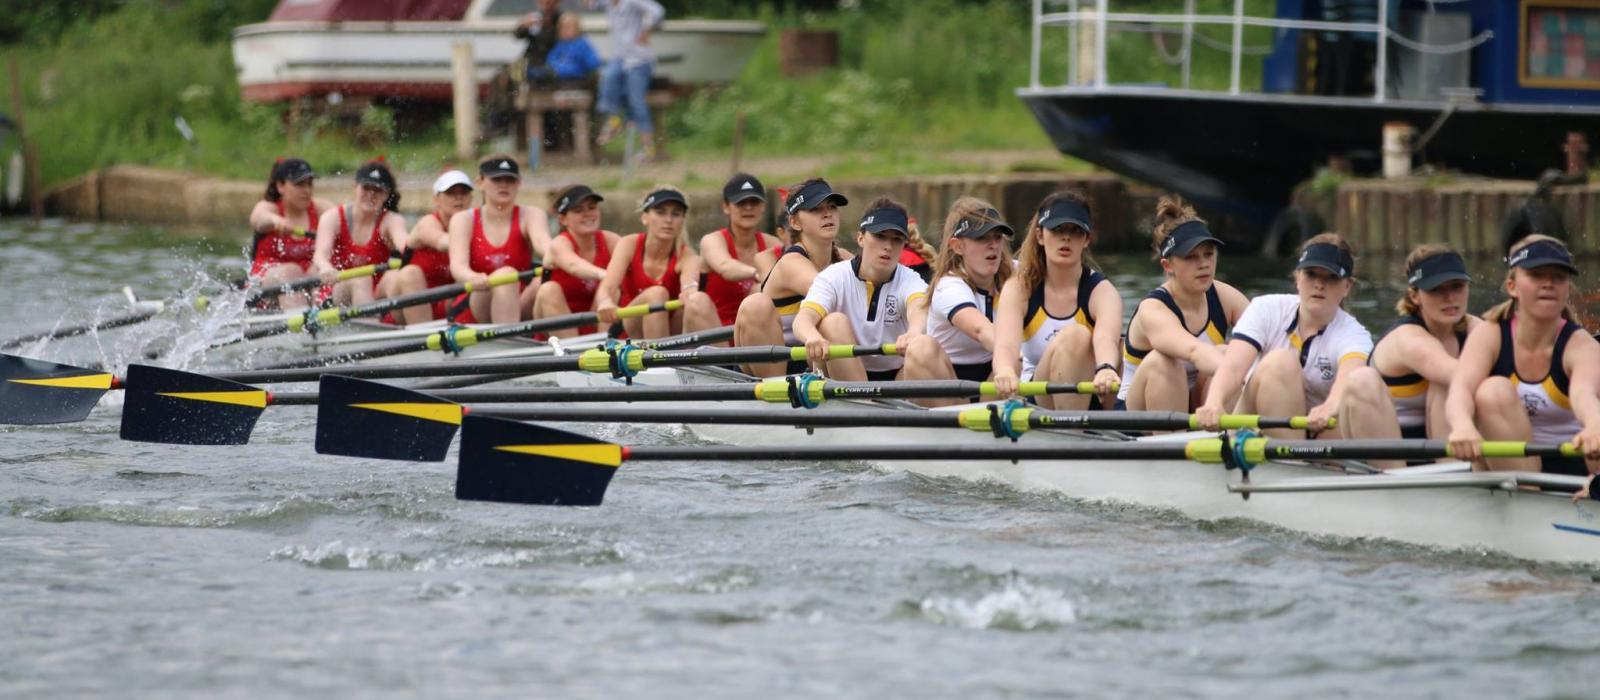 W1 rowing